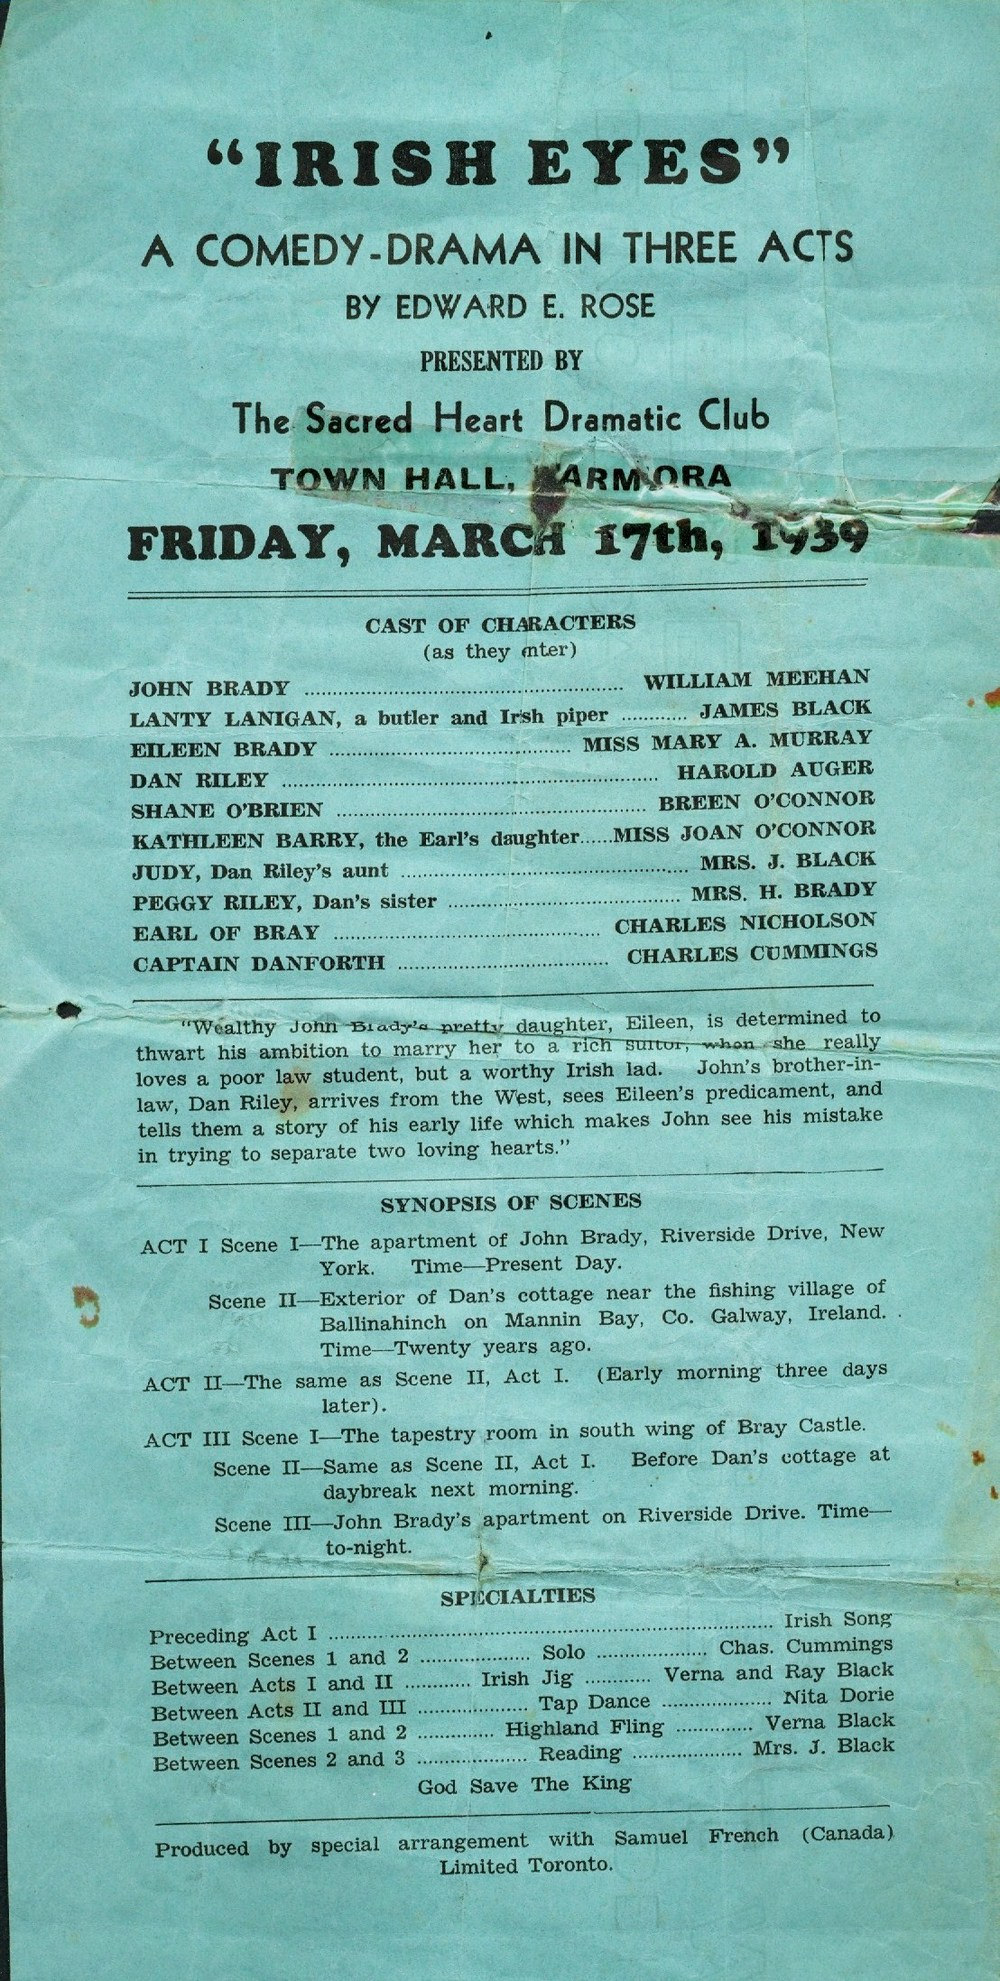 Events - Irish Eyes - Play at Town Hall,  1939